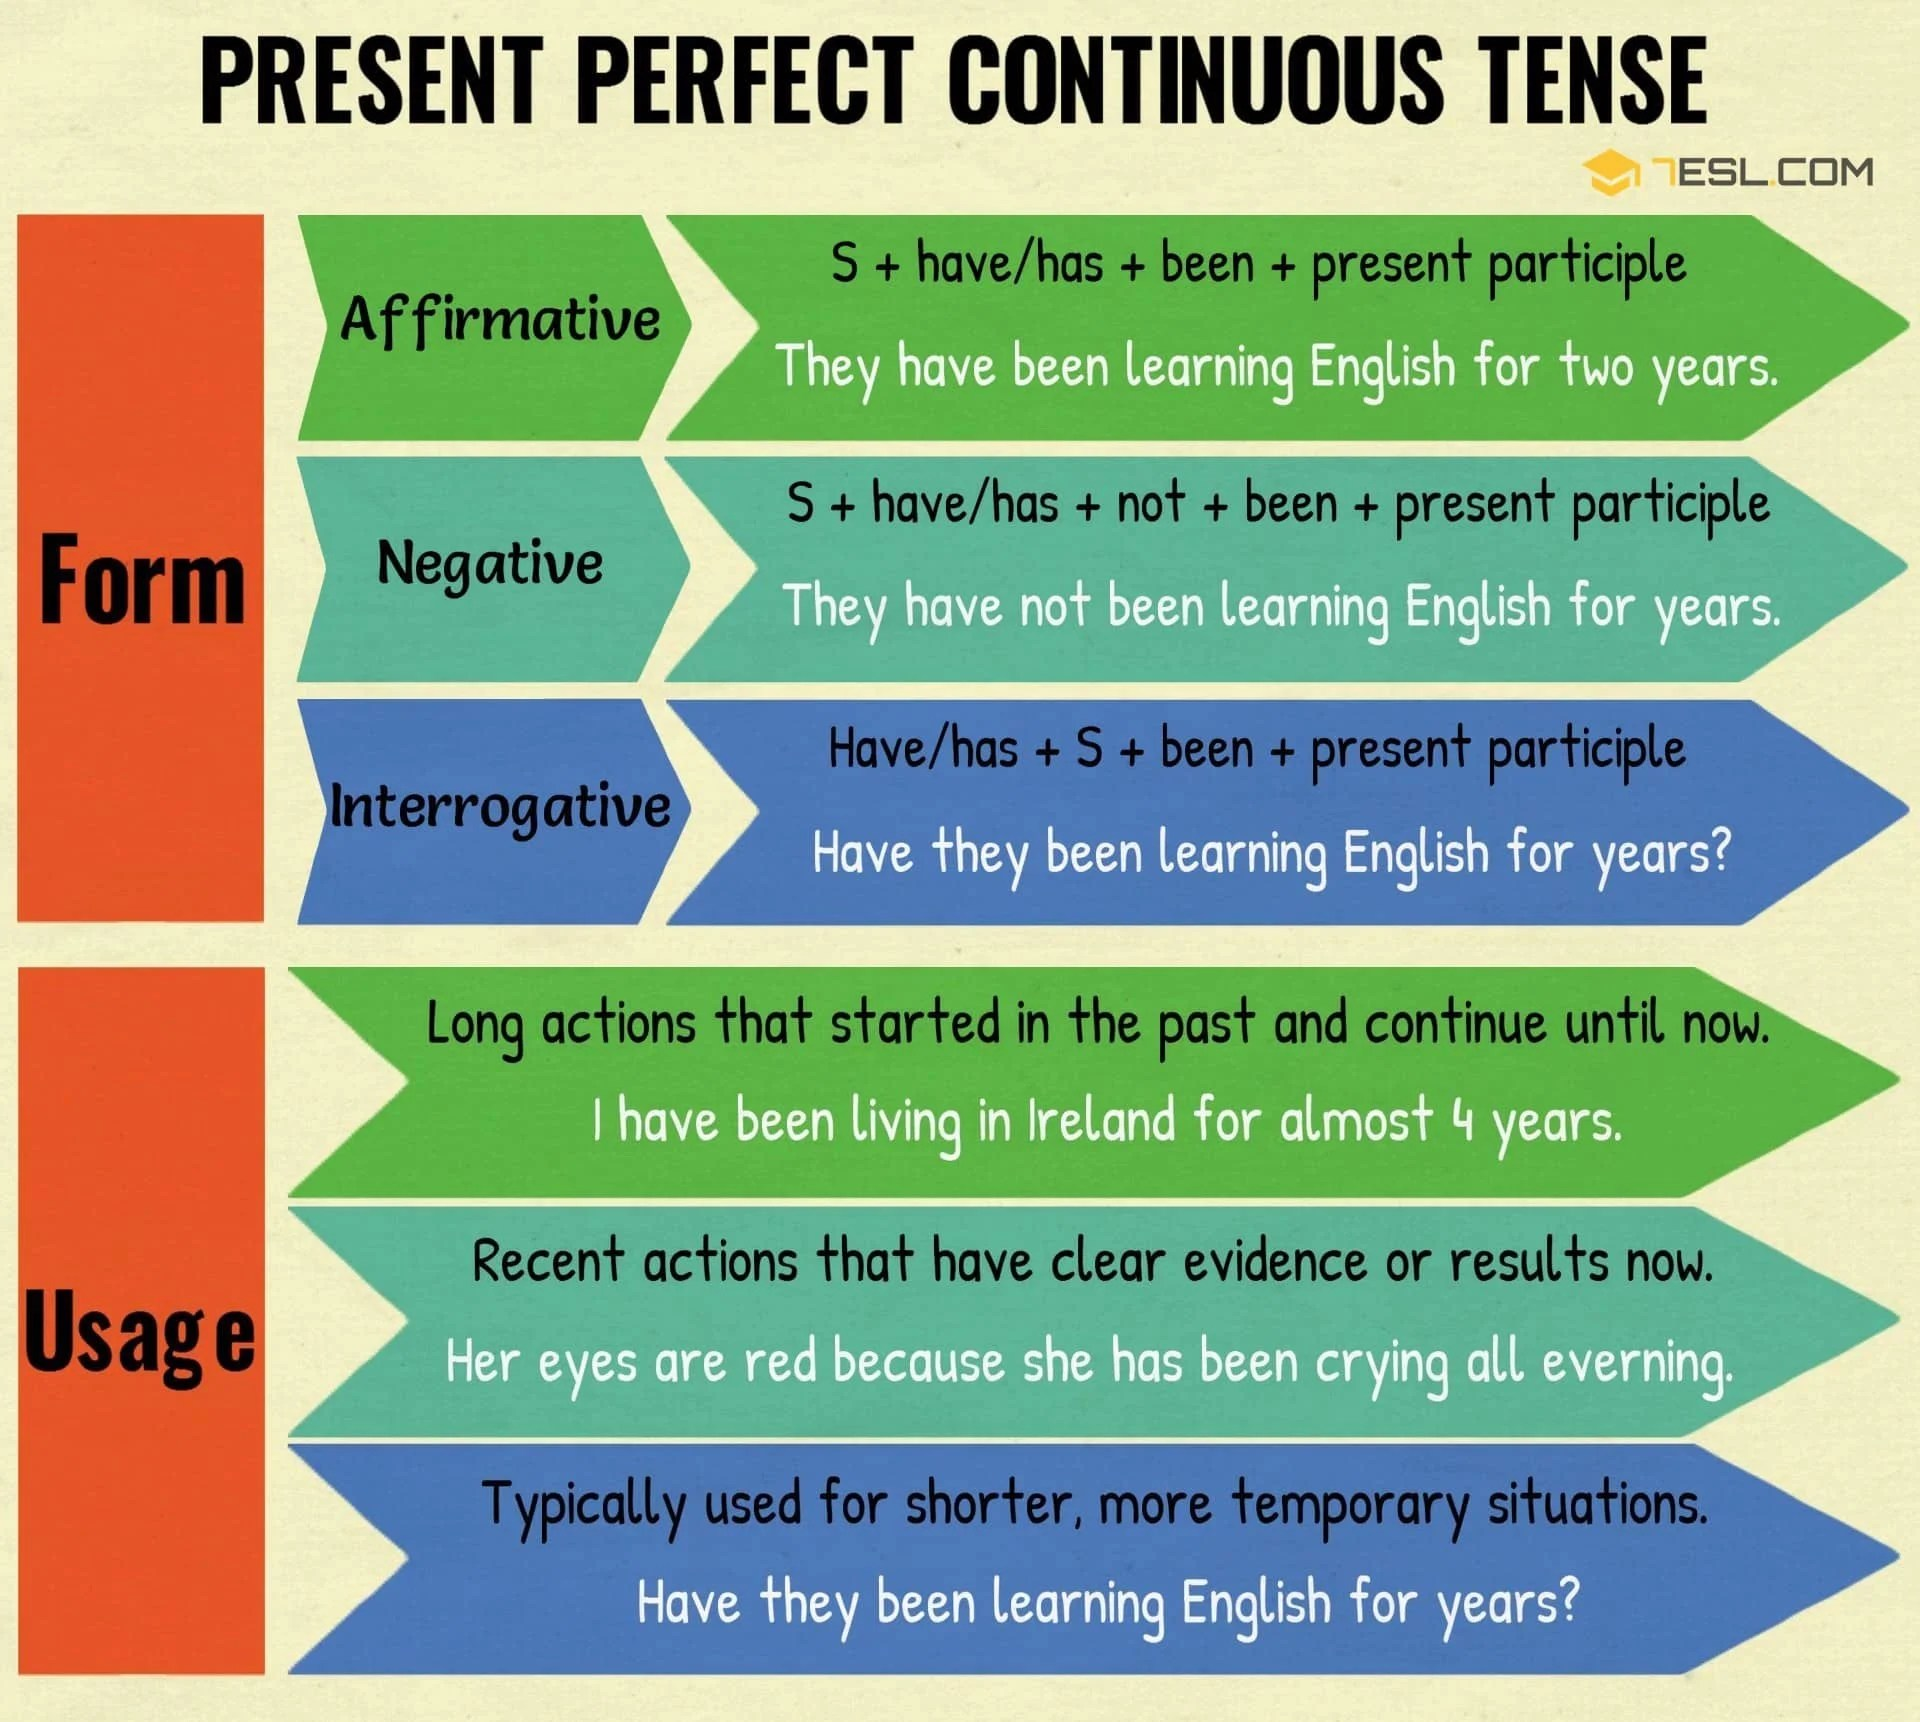 Present Perfect Continuous Tense Rules And Examples